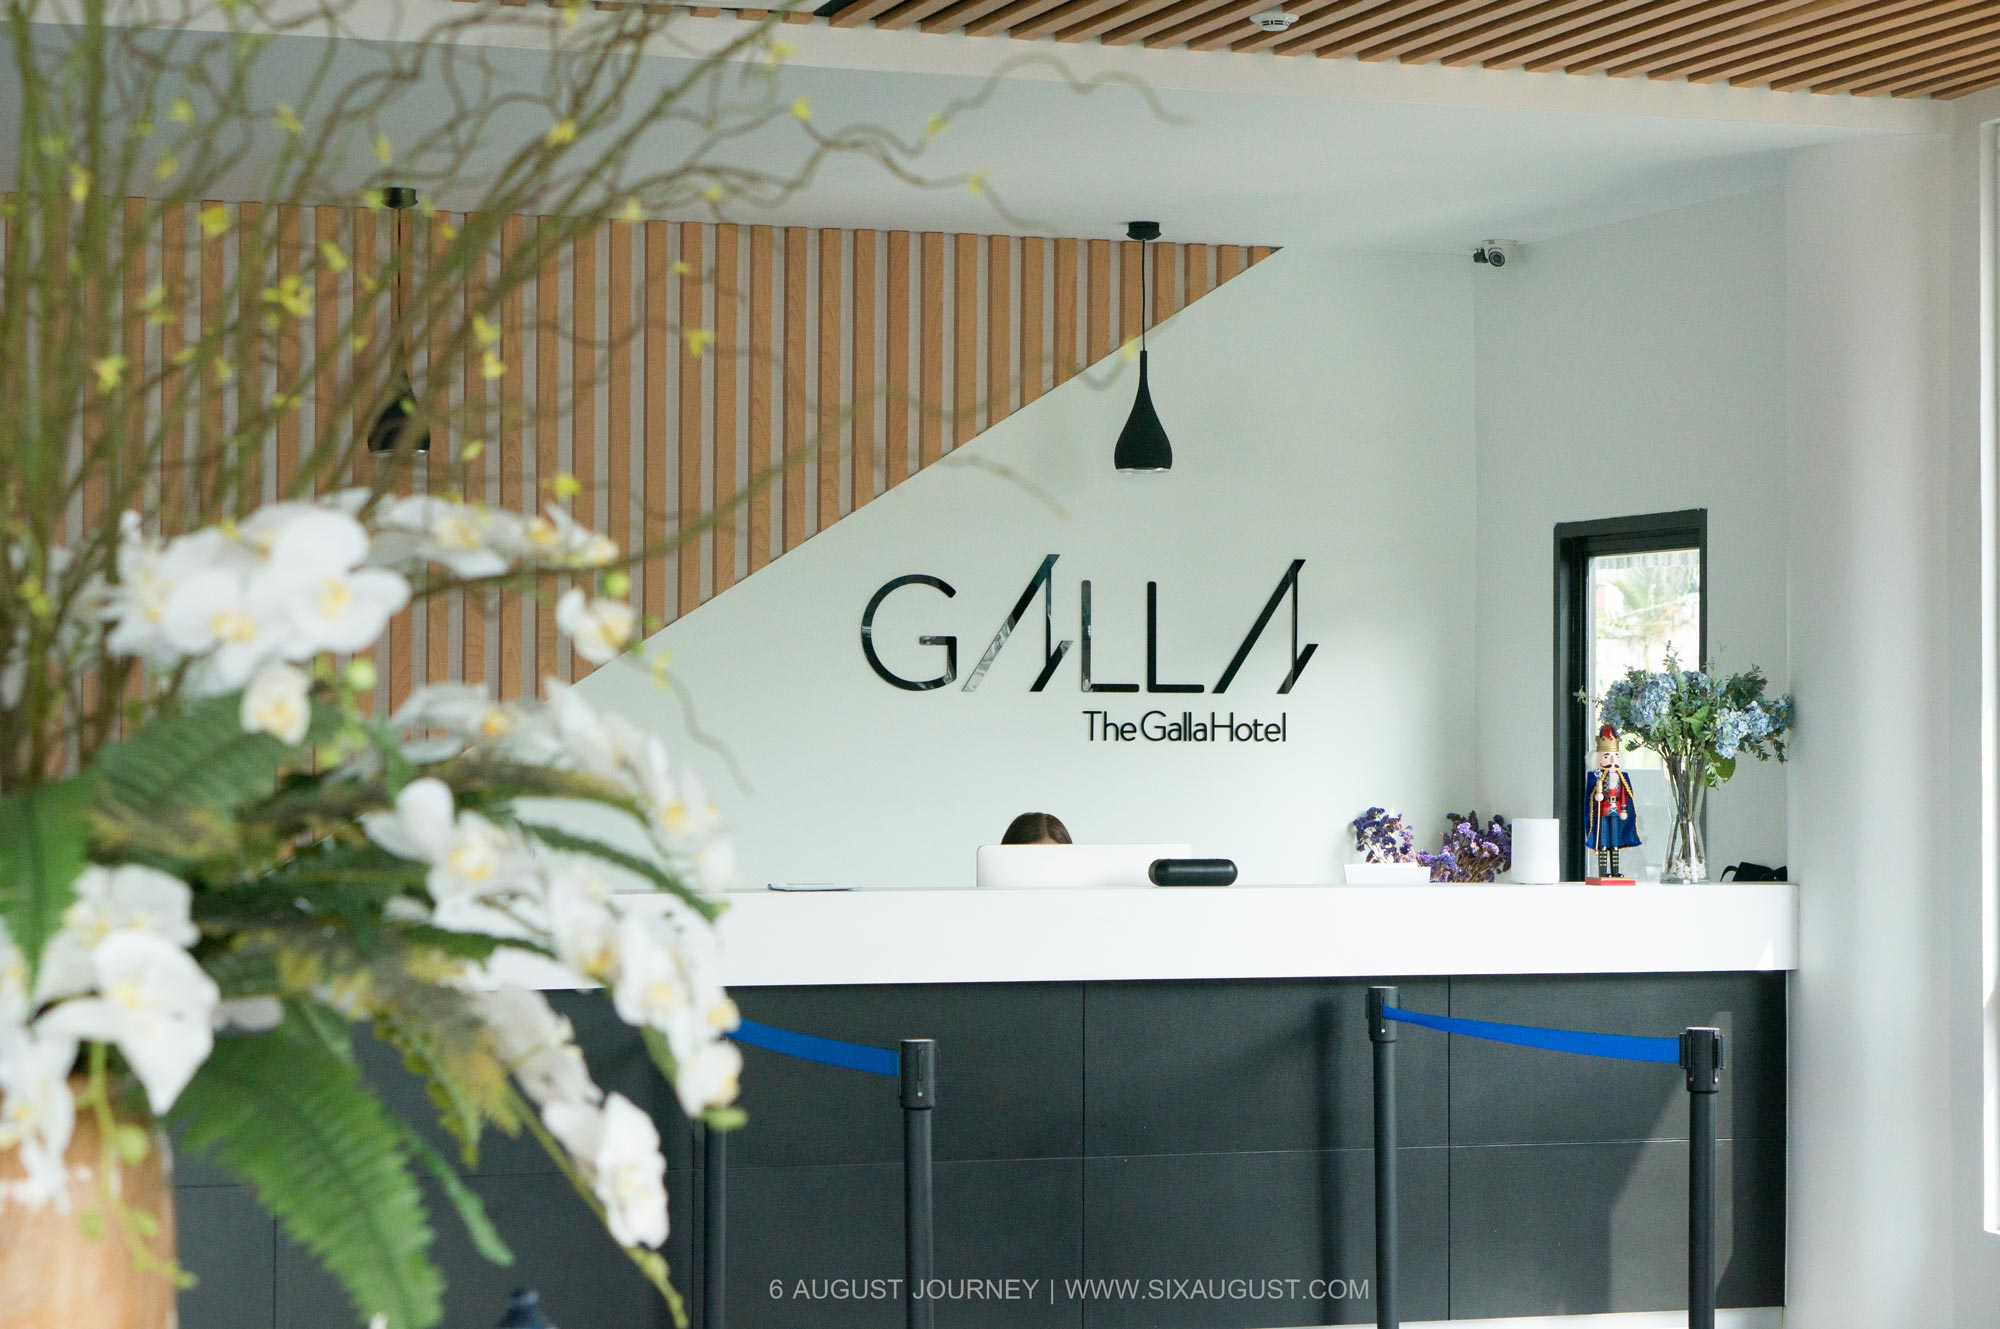 THE GALLA HOTEL